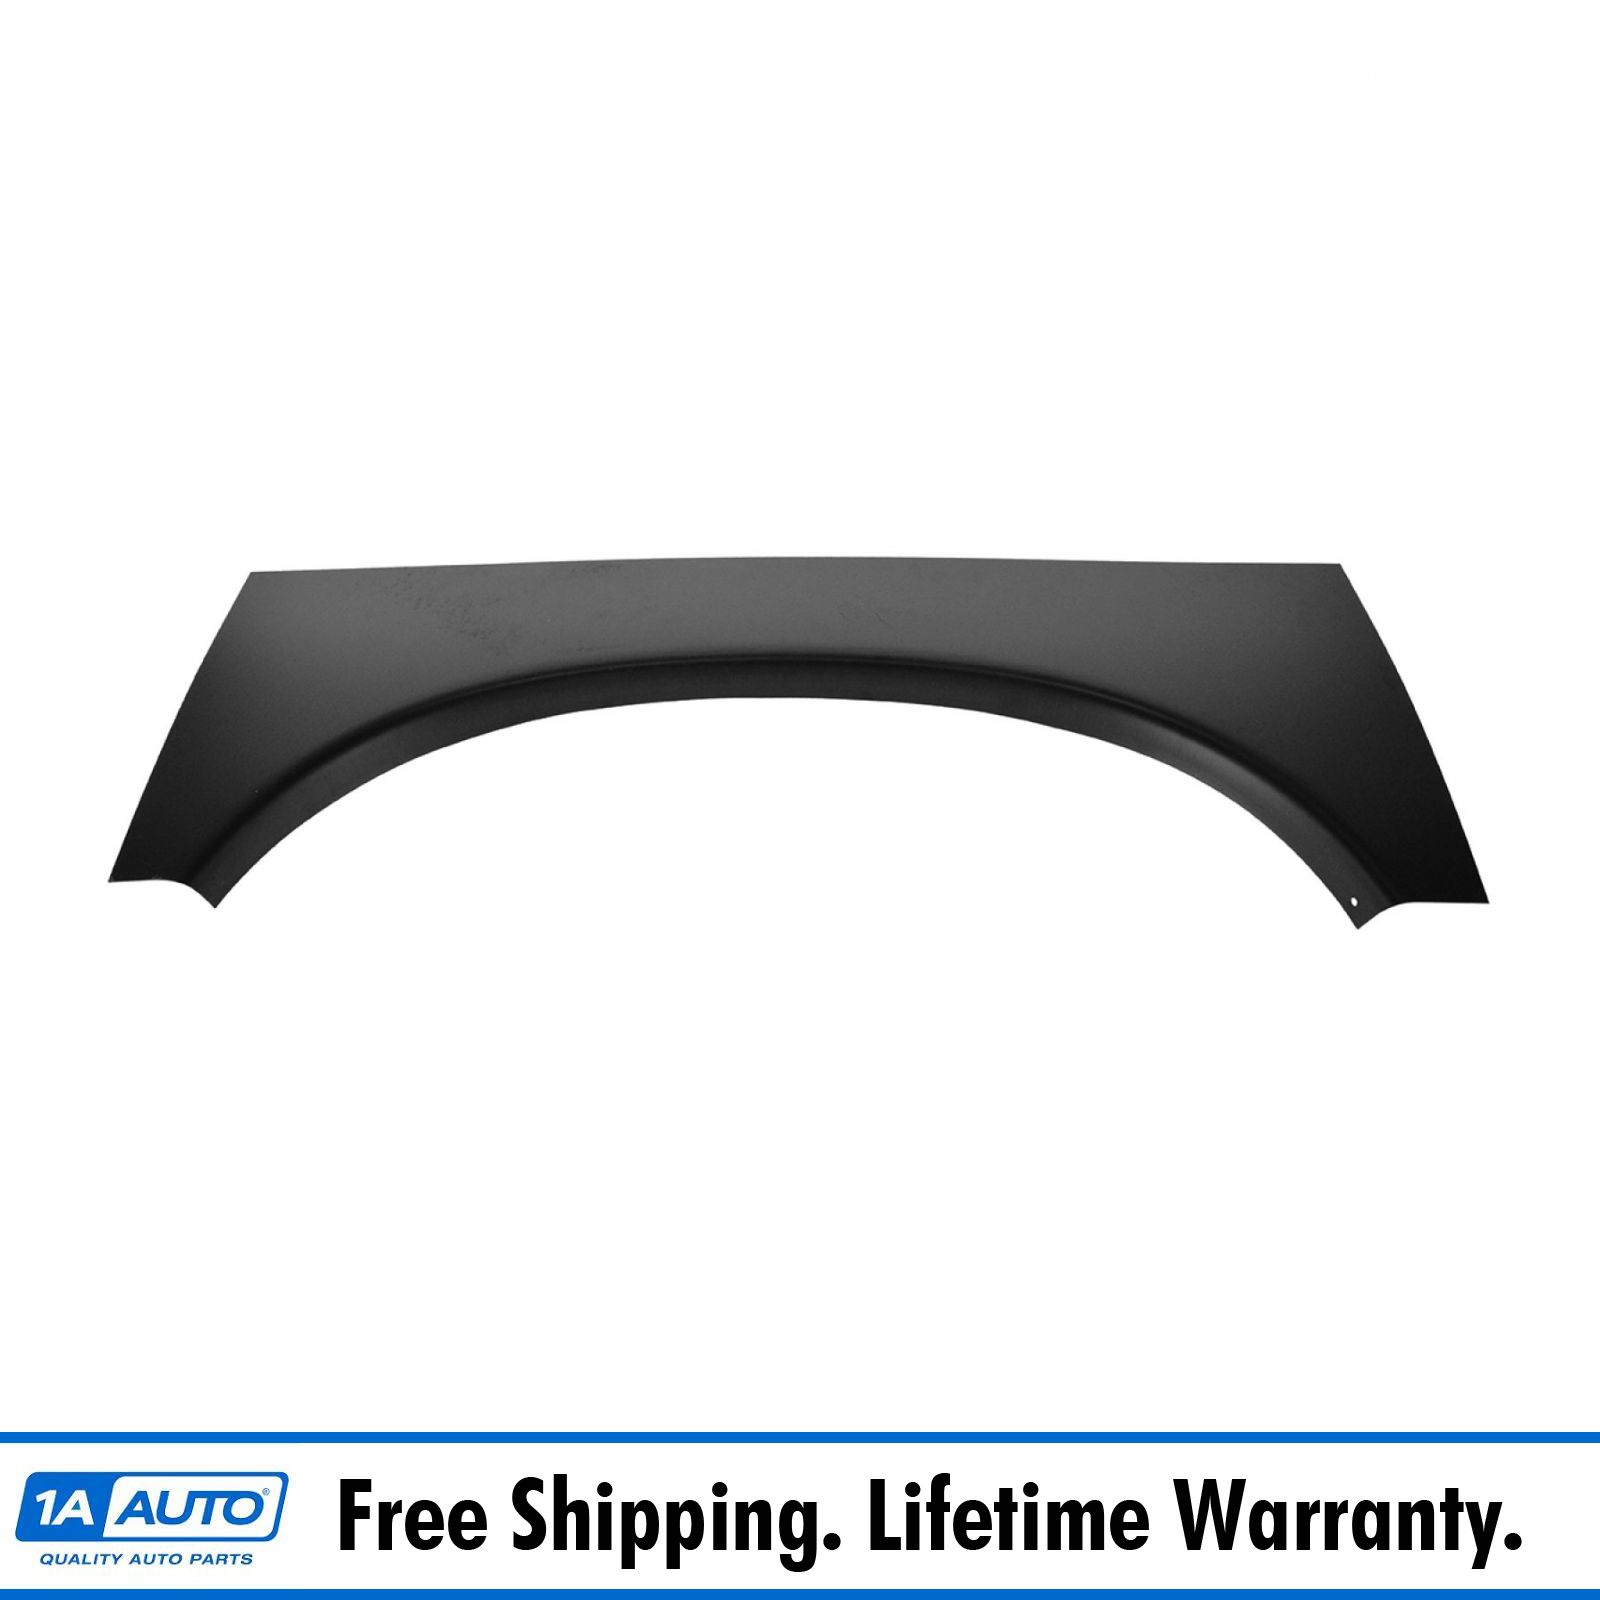 1A Auto Rust Repair Panel Rear Extended Cab Corner Driver for Dodge Ram 1500 2500 3500